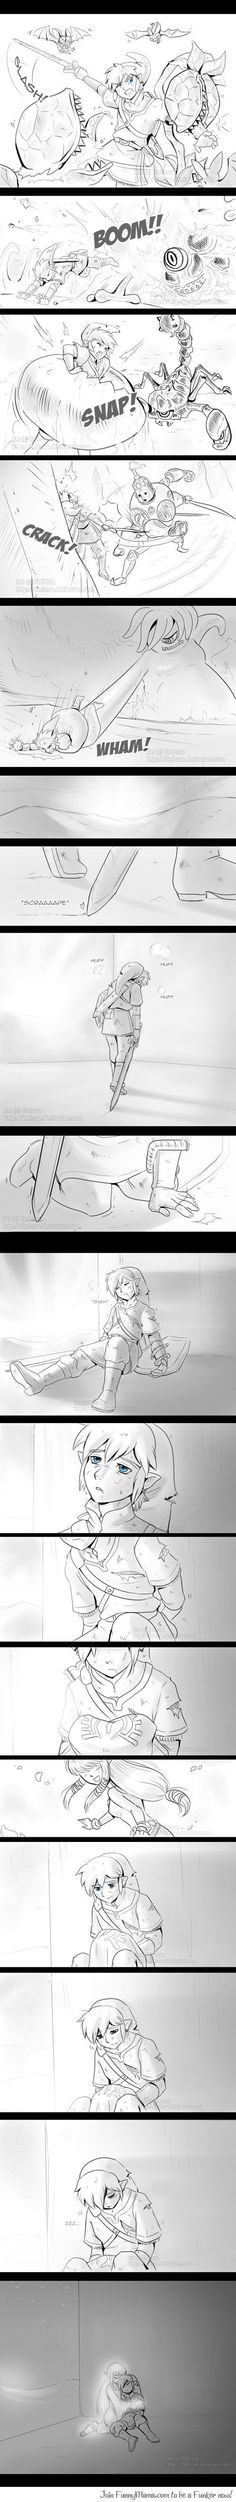 The feels.. btw this is Skyward Link